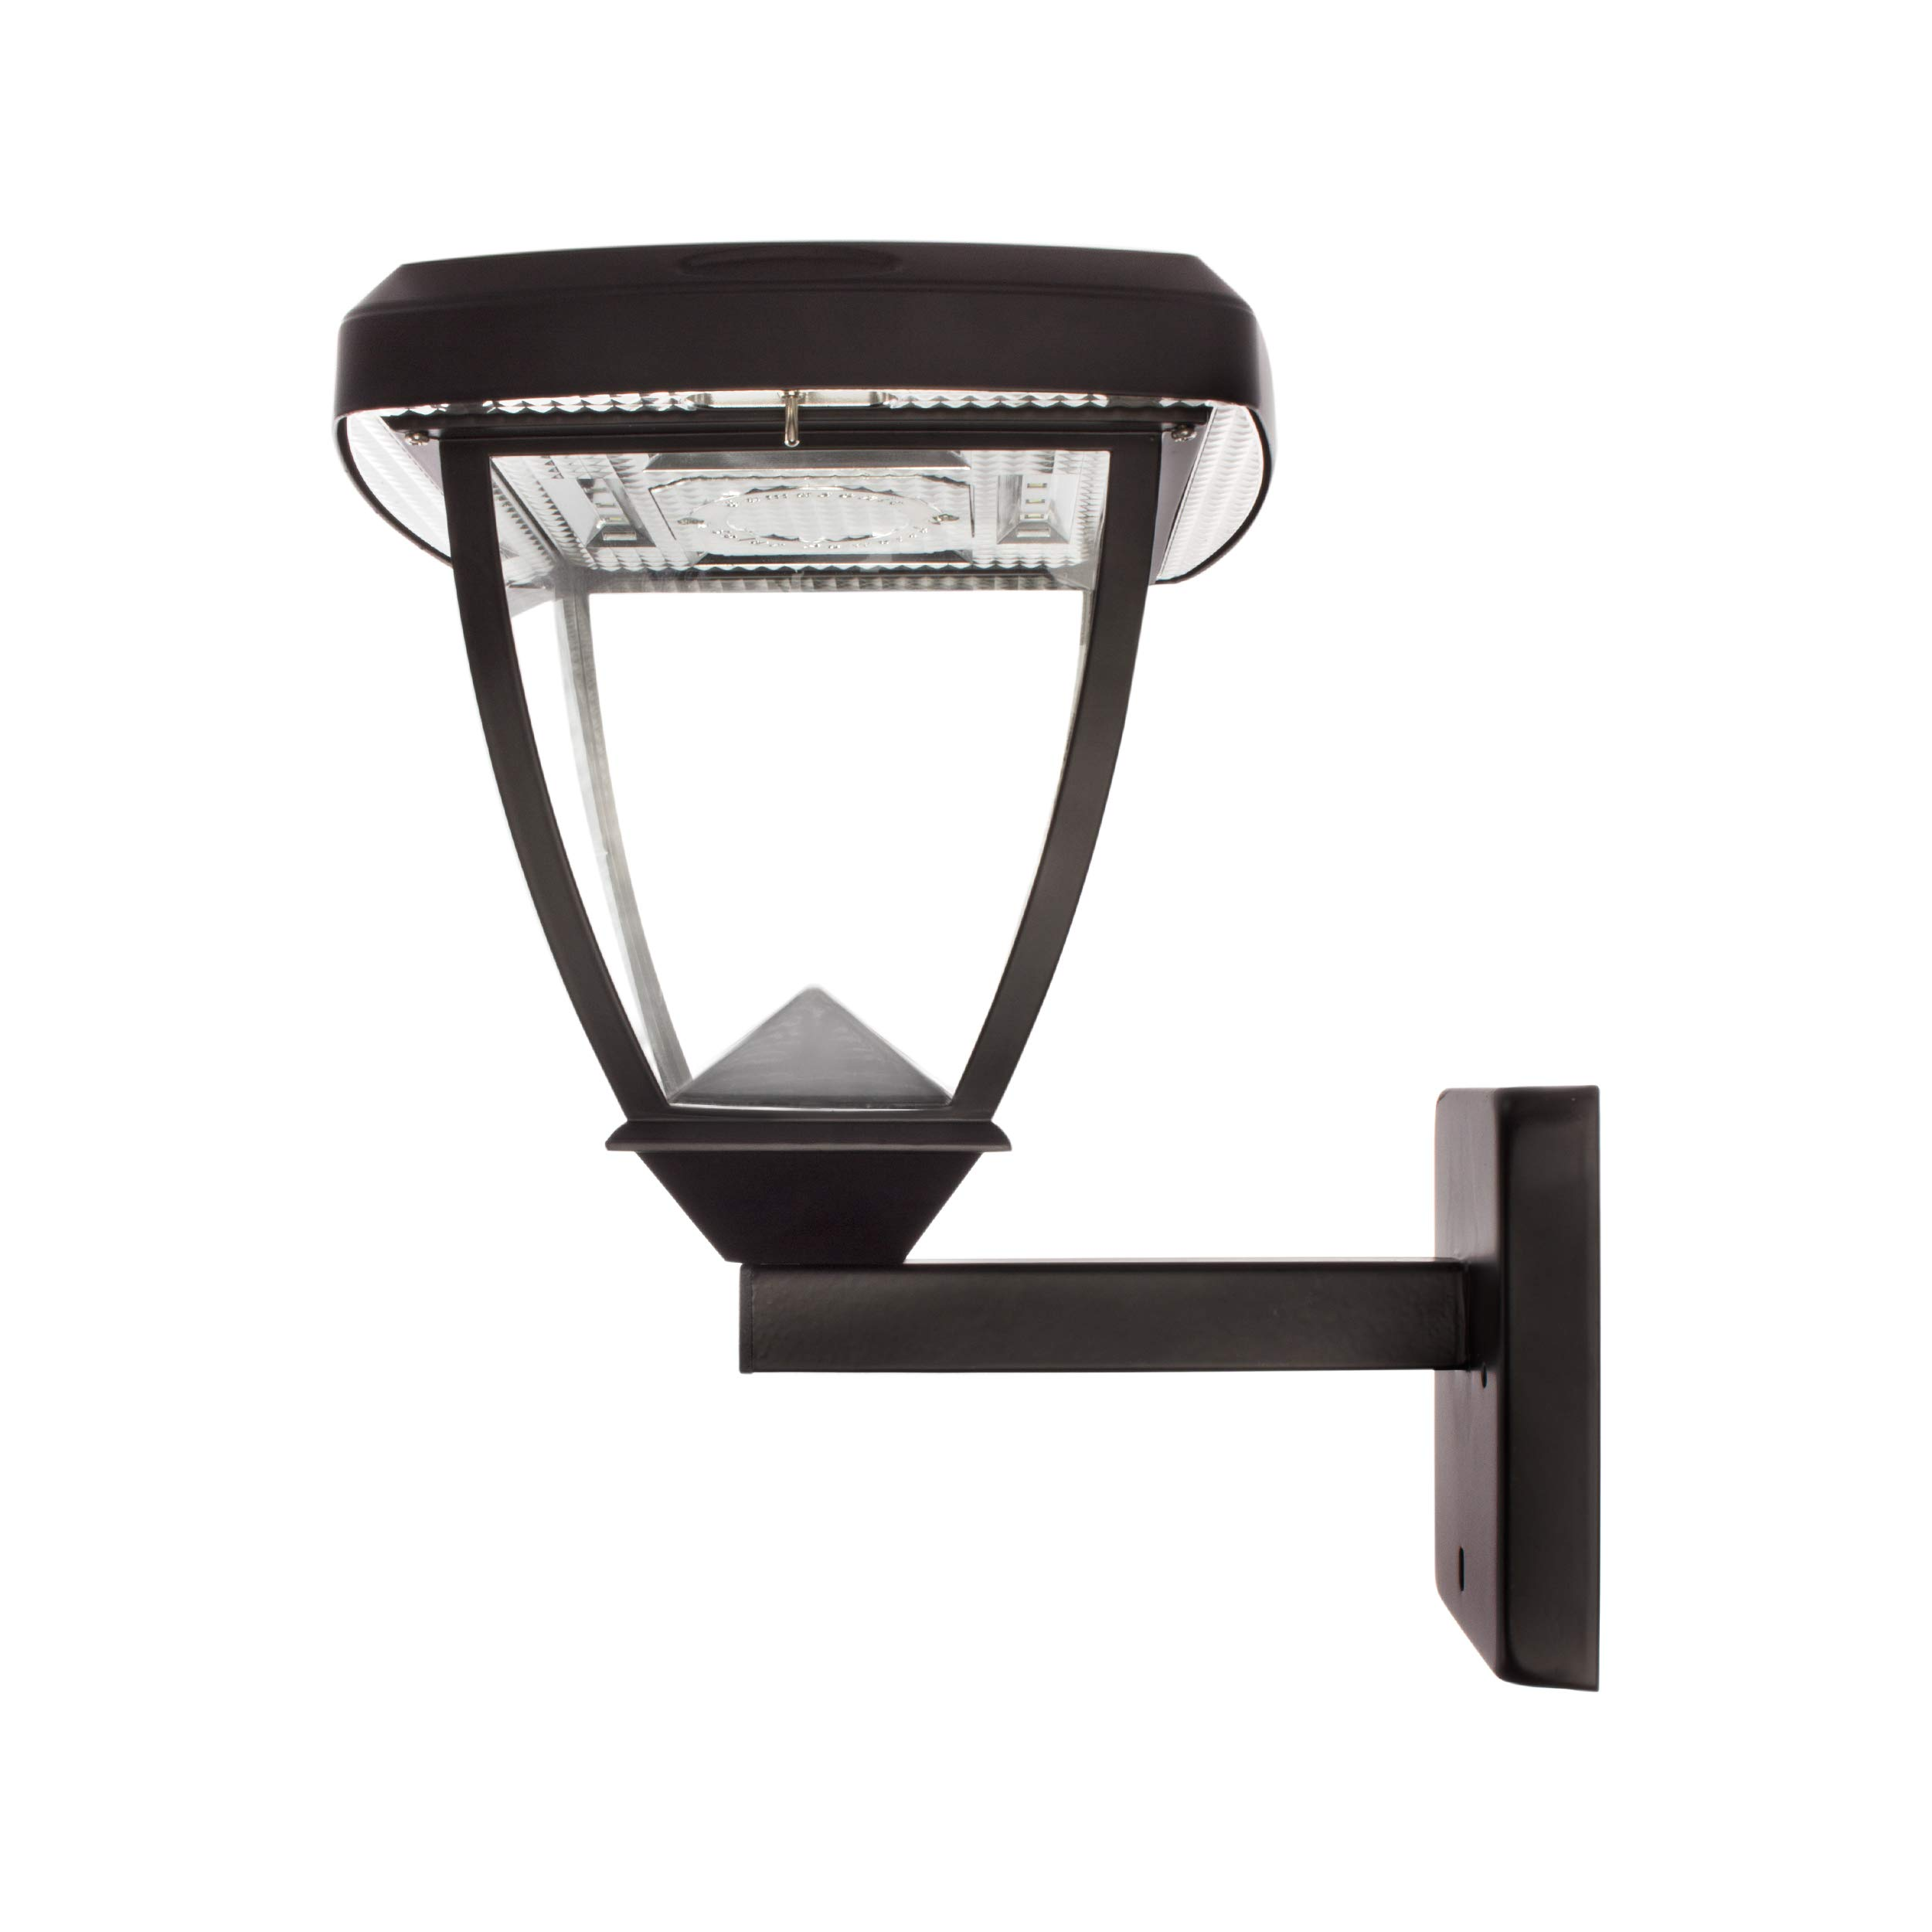 Solar Basics SBG2-118FPW Inversee Solar Light Fixture, 3'' Mounts for Pole Pier Wall, 2-Pack, Black, 2 Count